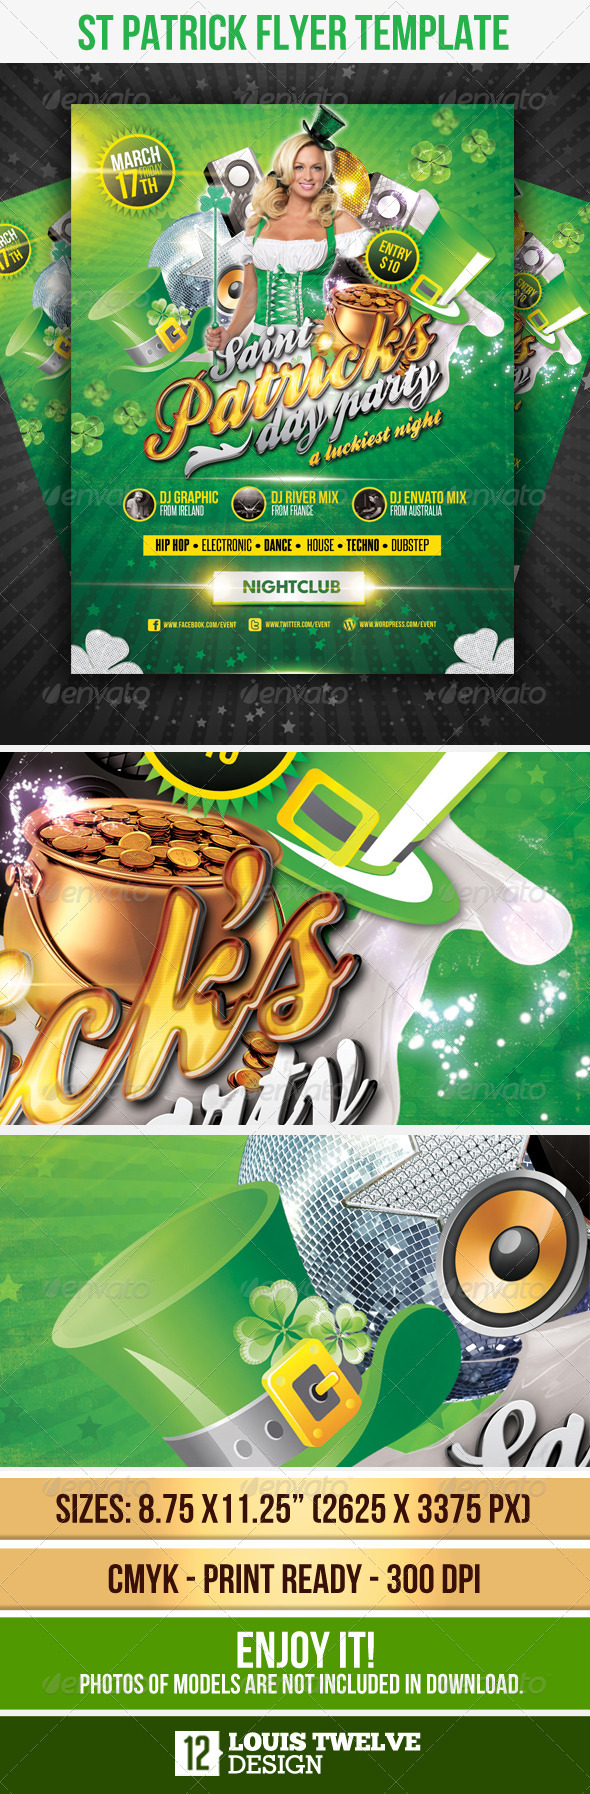 St Patricks Flyer Template - Flyers Print Templates